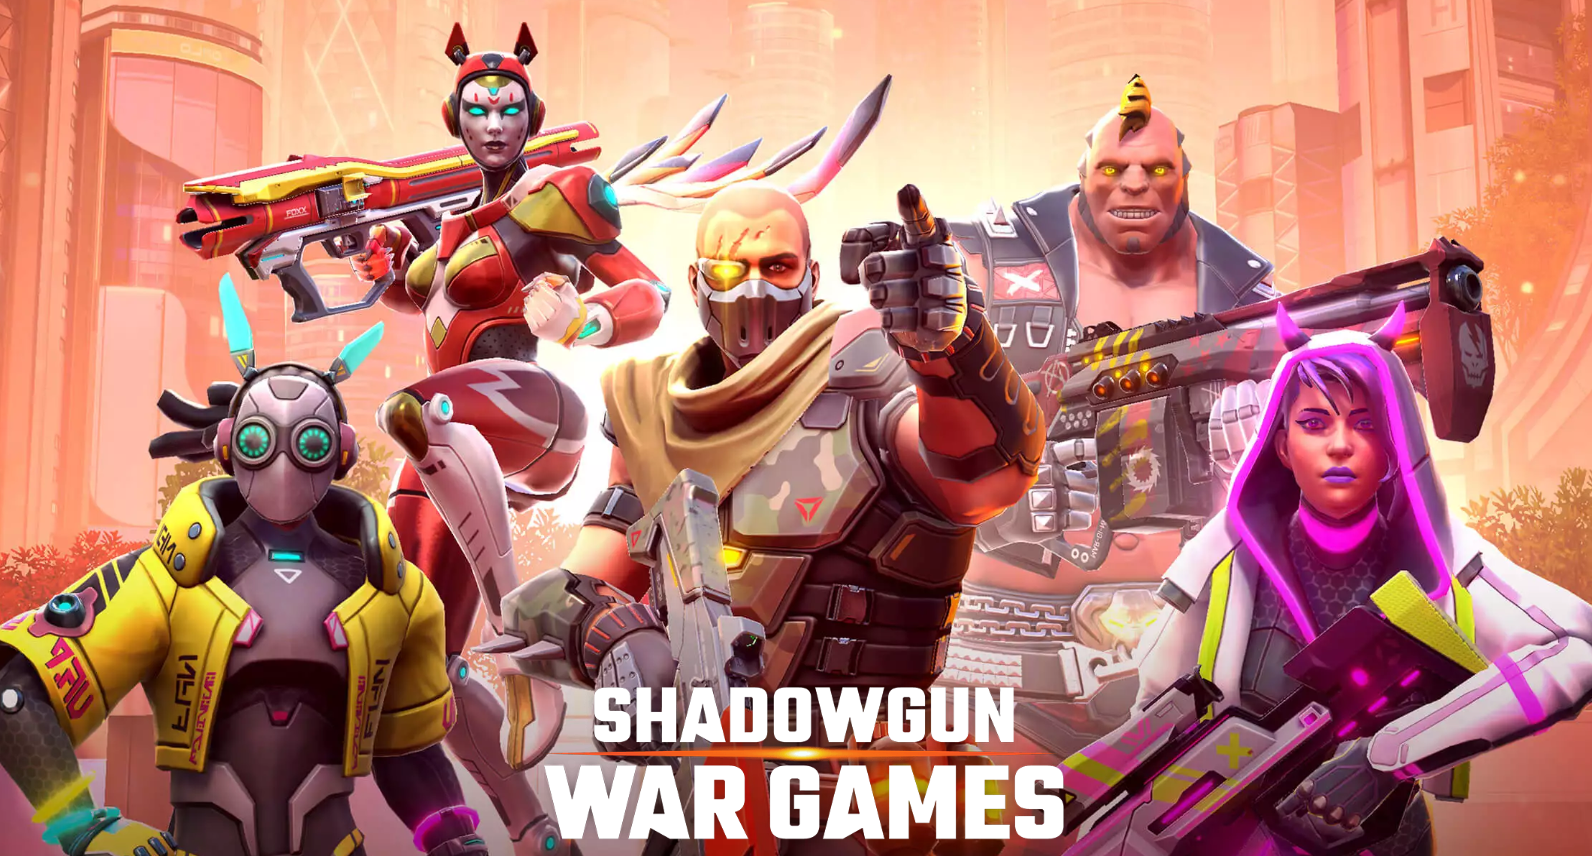 Shadowgun War Games: First Impressions - The Mobile Overwatch? 21